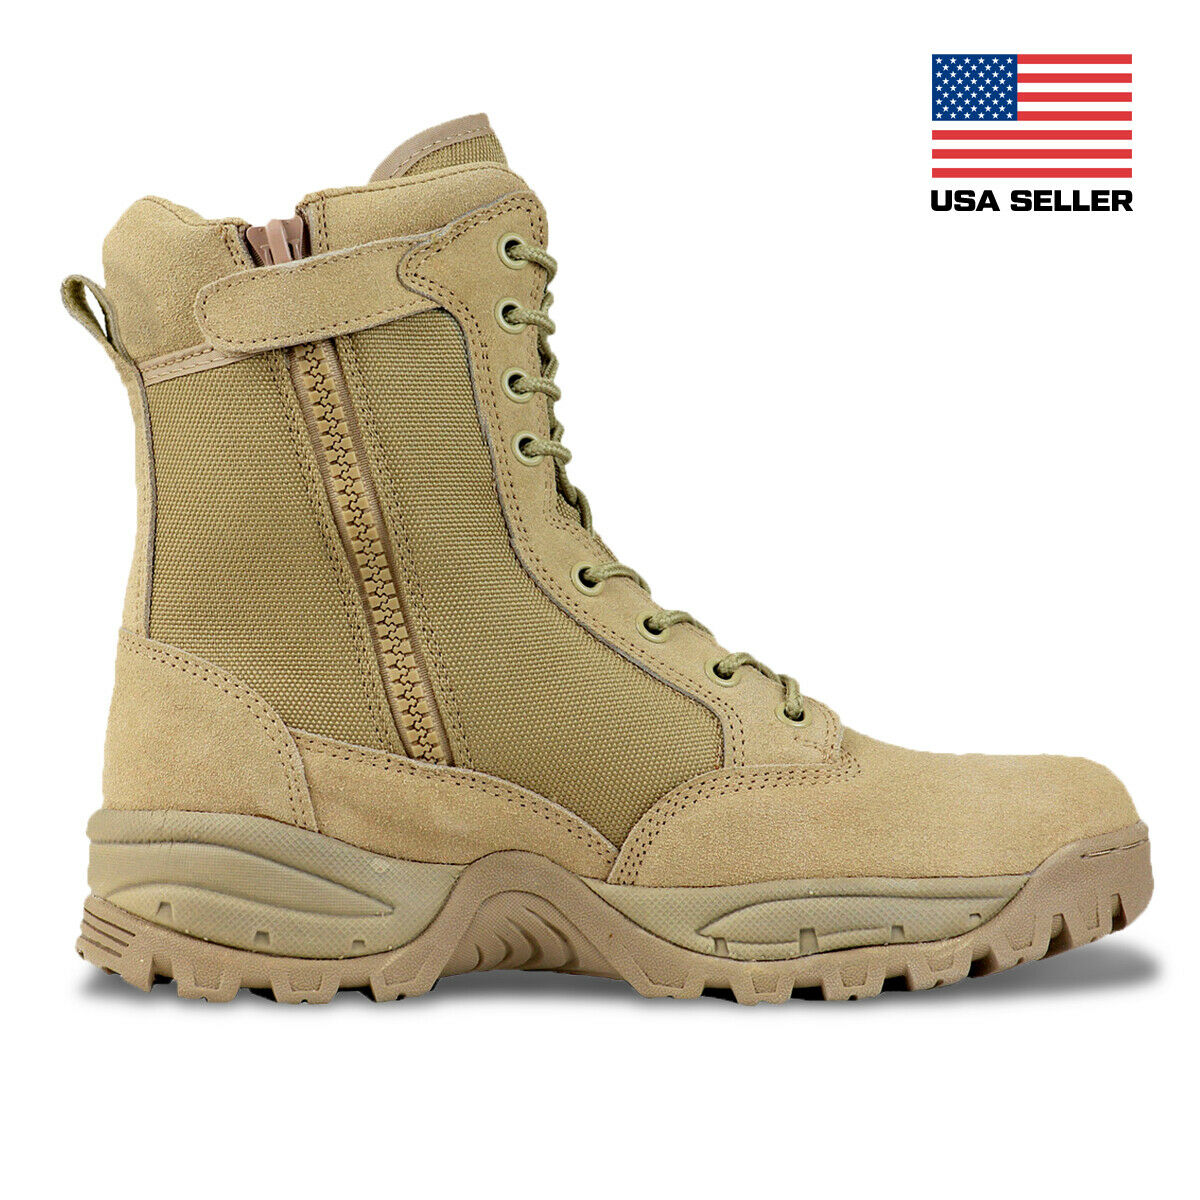 promo code 5e01a e2806 FINAL SALE Men s 8   Desert Tan Military Tactical Work Boots